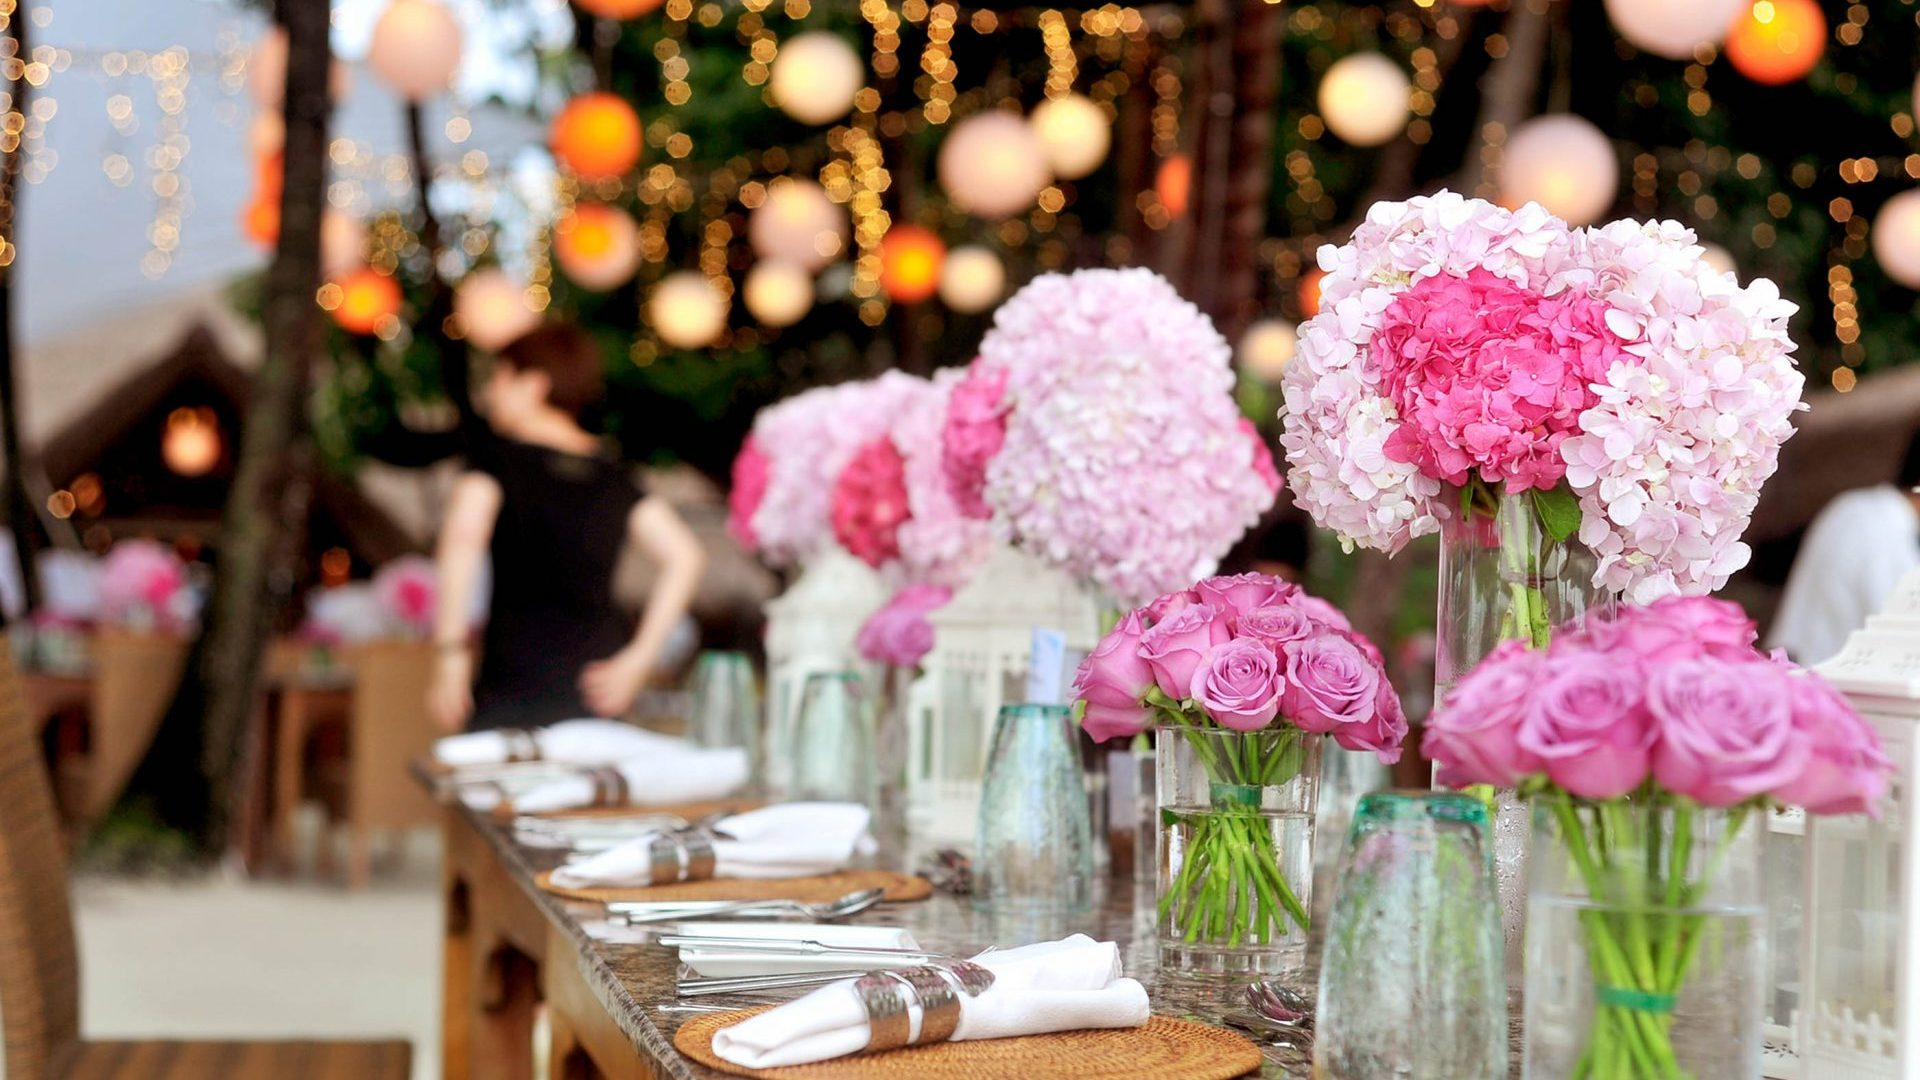 Floral arrangement on table with soft lights in background